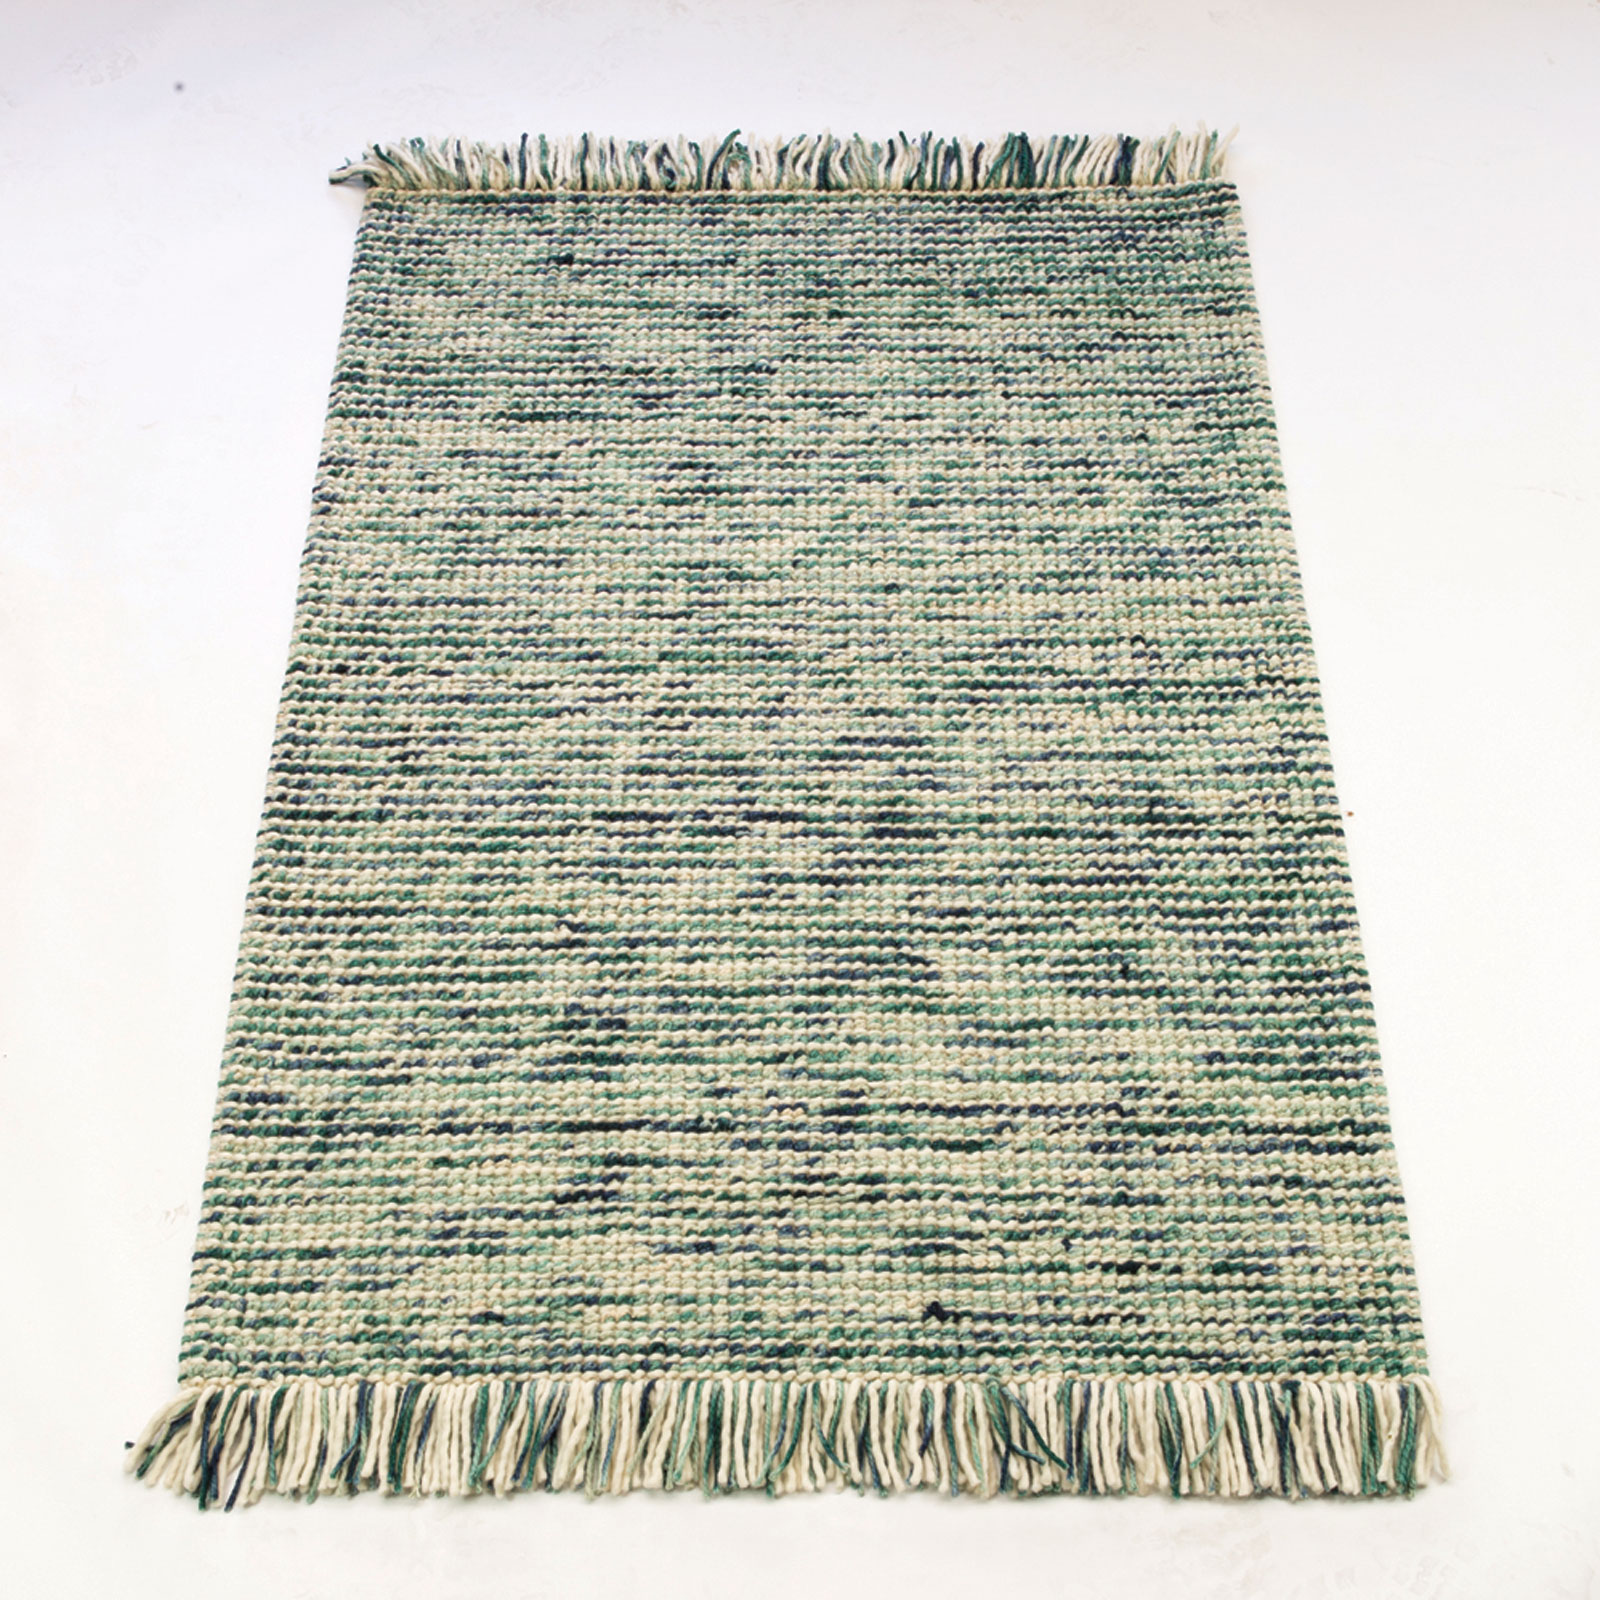 Retreat Maya Rugs in Teal